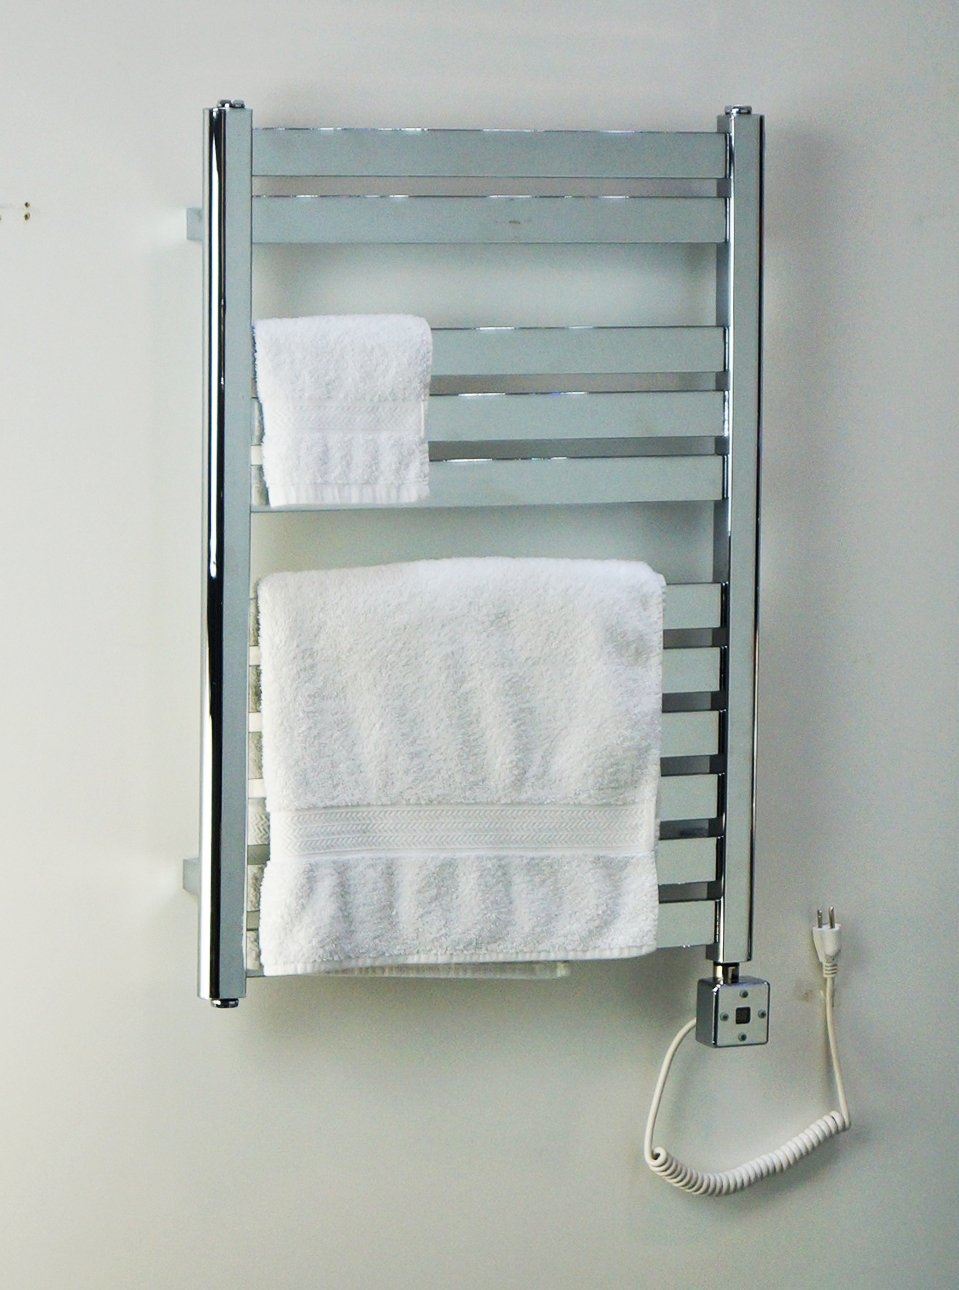 Amazon.com: Heated Towel Rail Electric Wall Mount Bathroom Towel ...